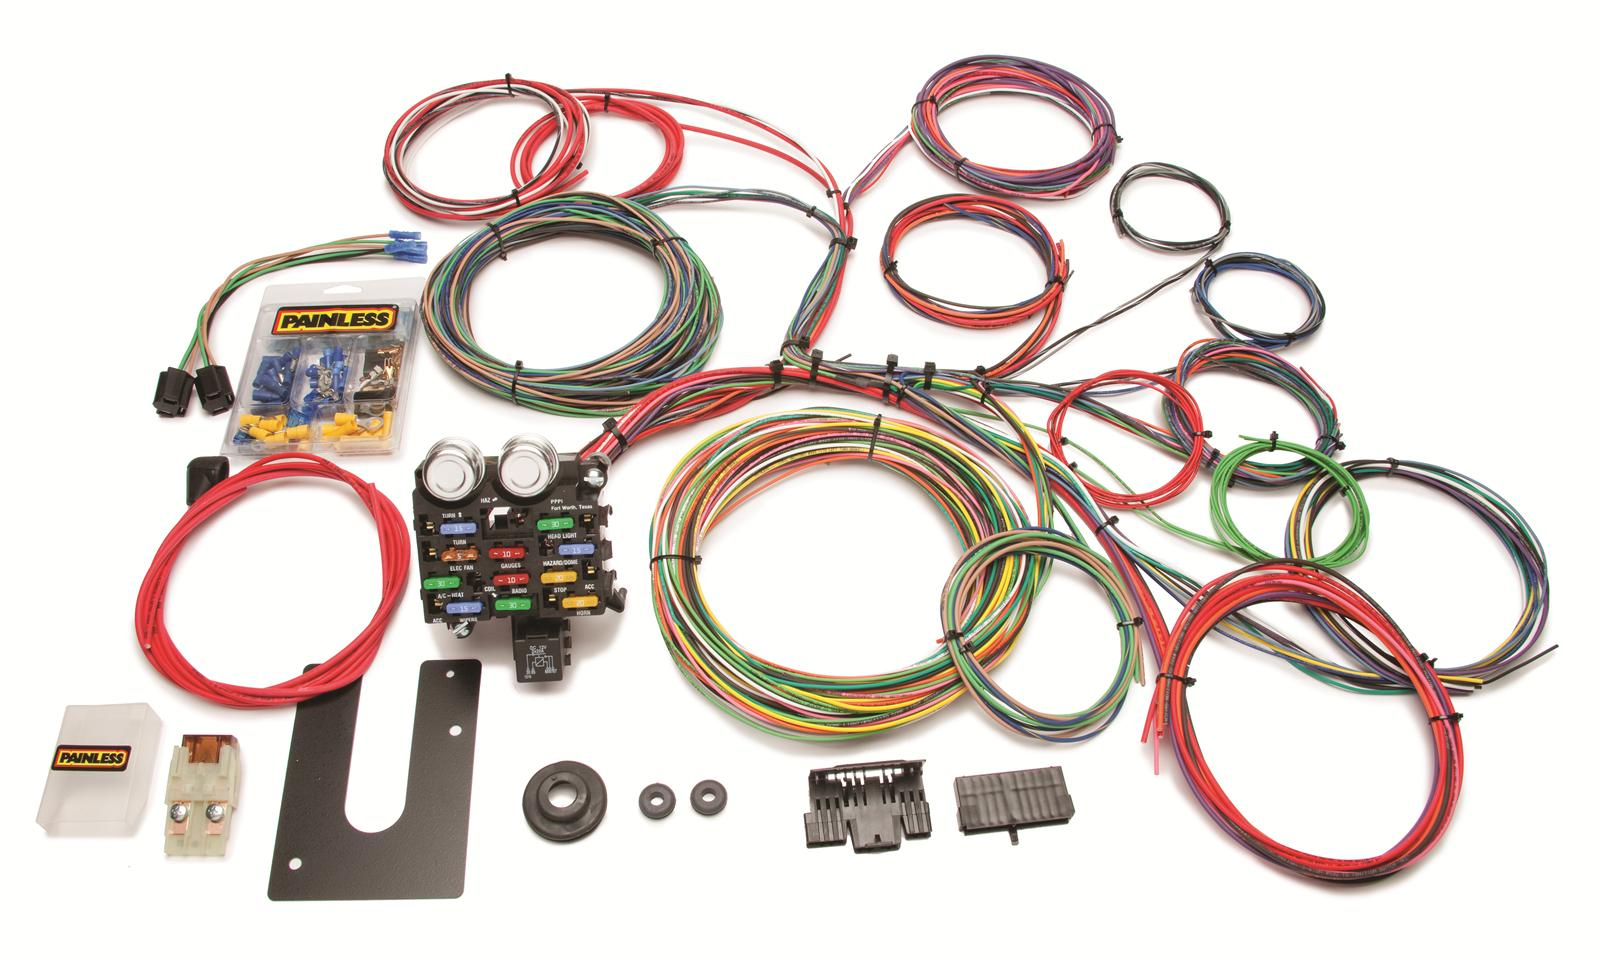 Painless Wiring Harness And Chassis | Wiring Diagram - Painless Wiring Harness Diagram